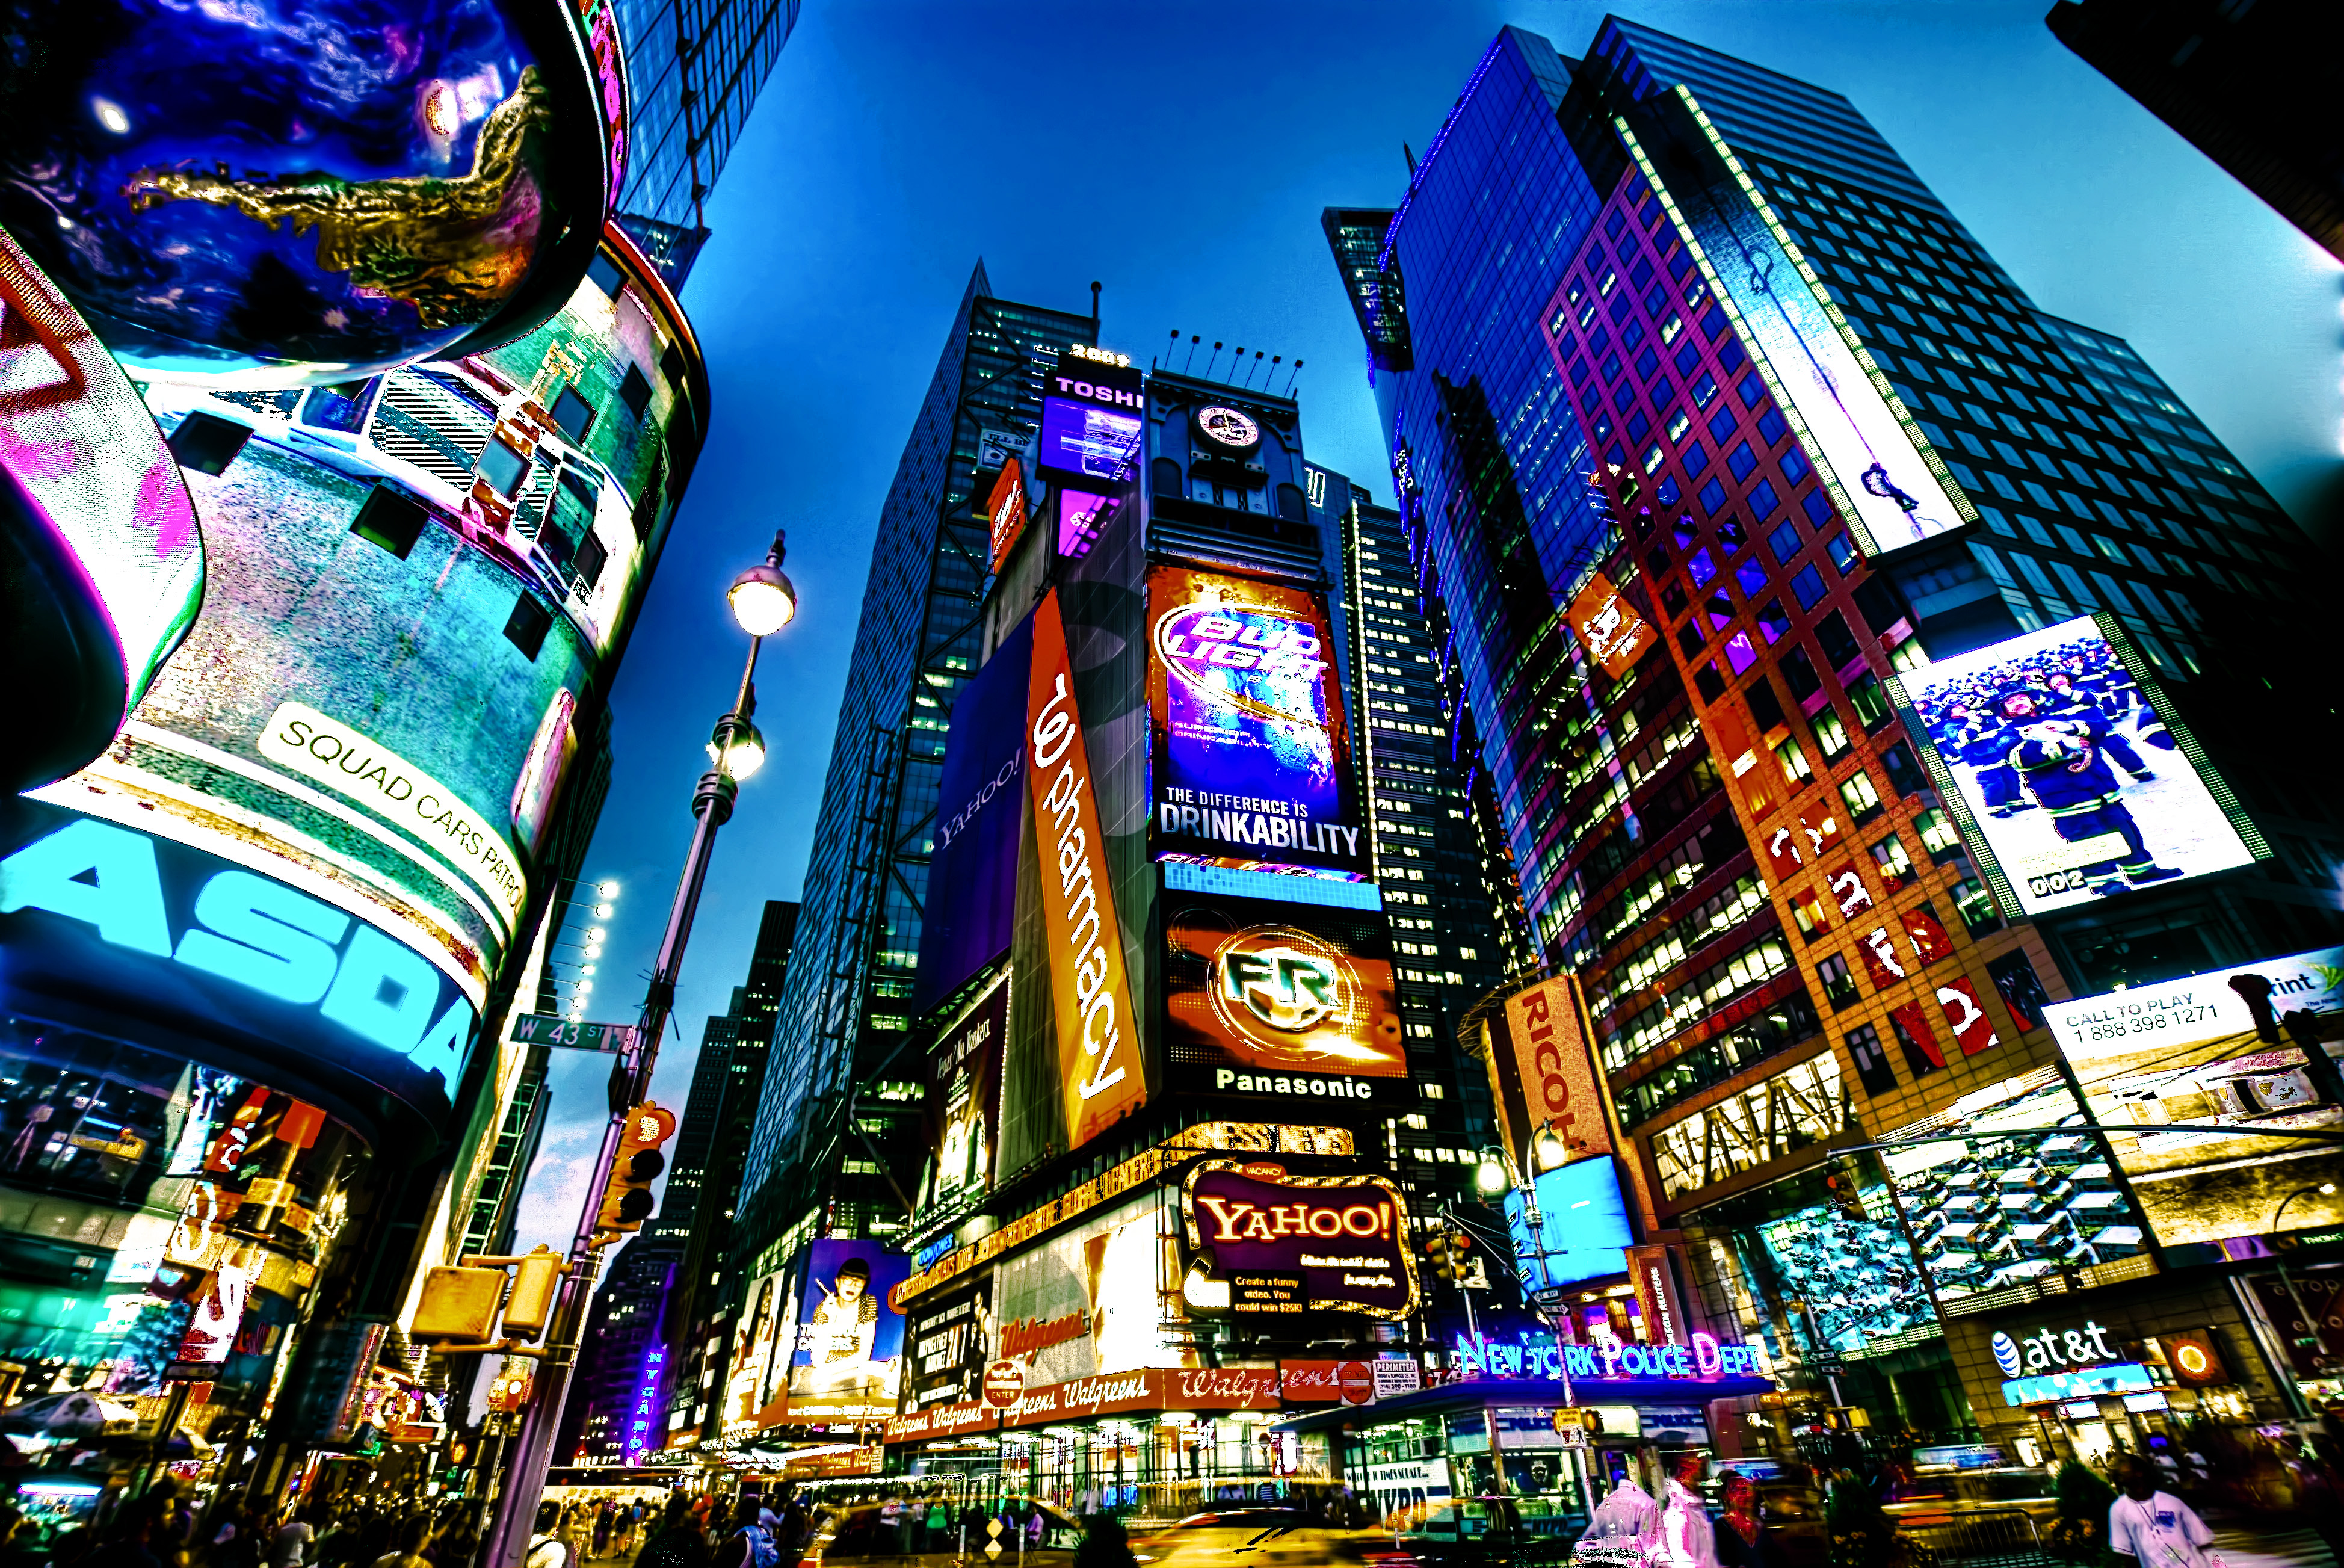 Times_Square,_New_York_City_(HDR)